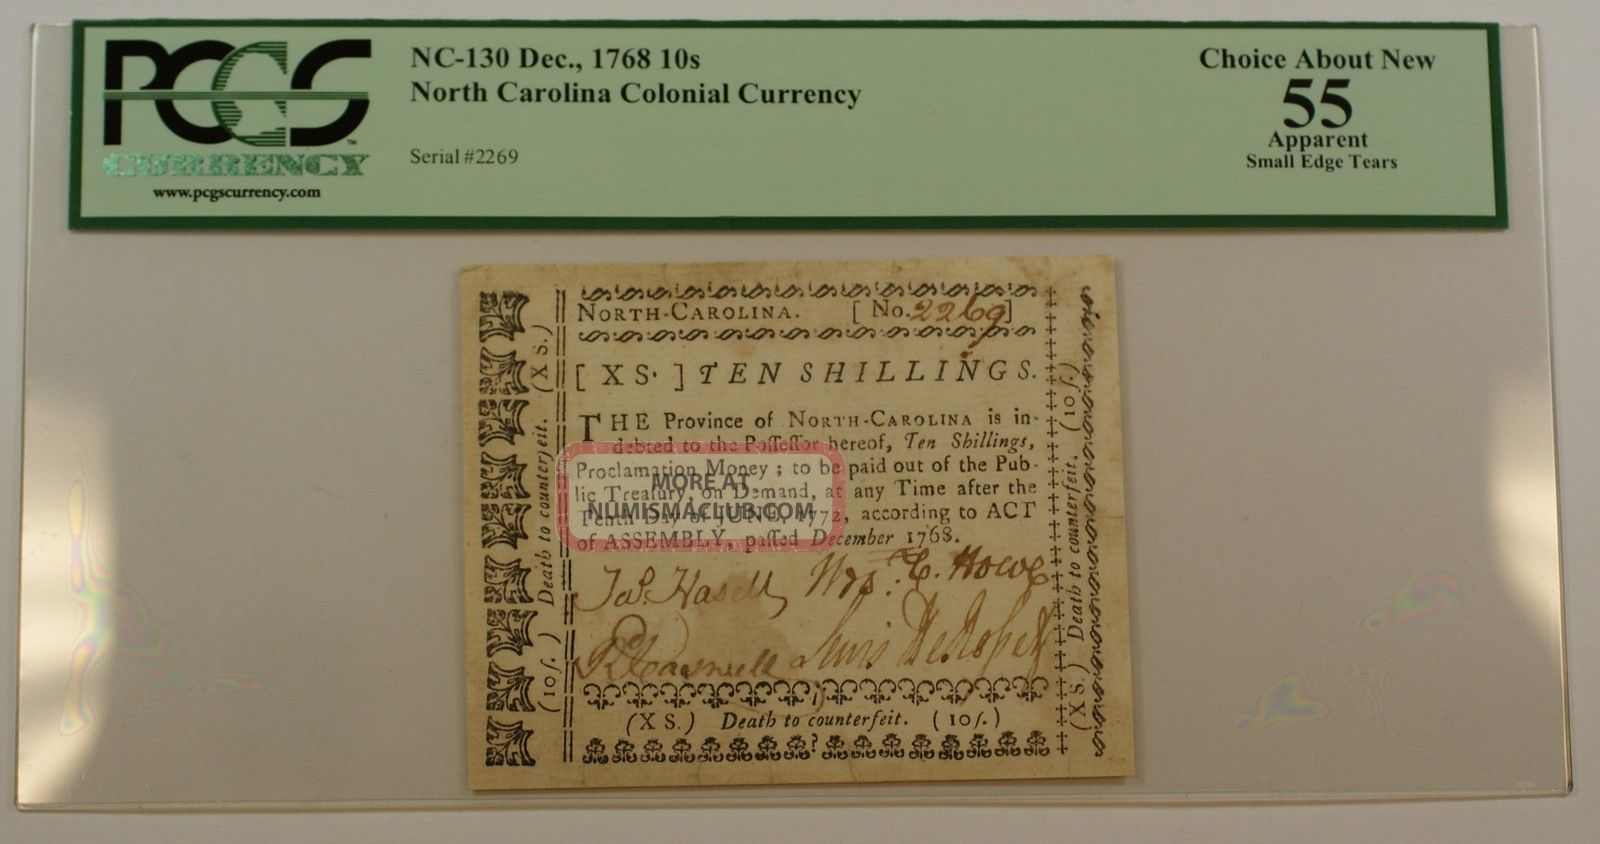 Dec.  1768 10s Colonial Currency Note Pcgs Choice About 55 Apparent Nc - 130 Paper Money: US photo